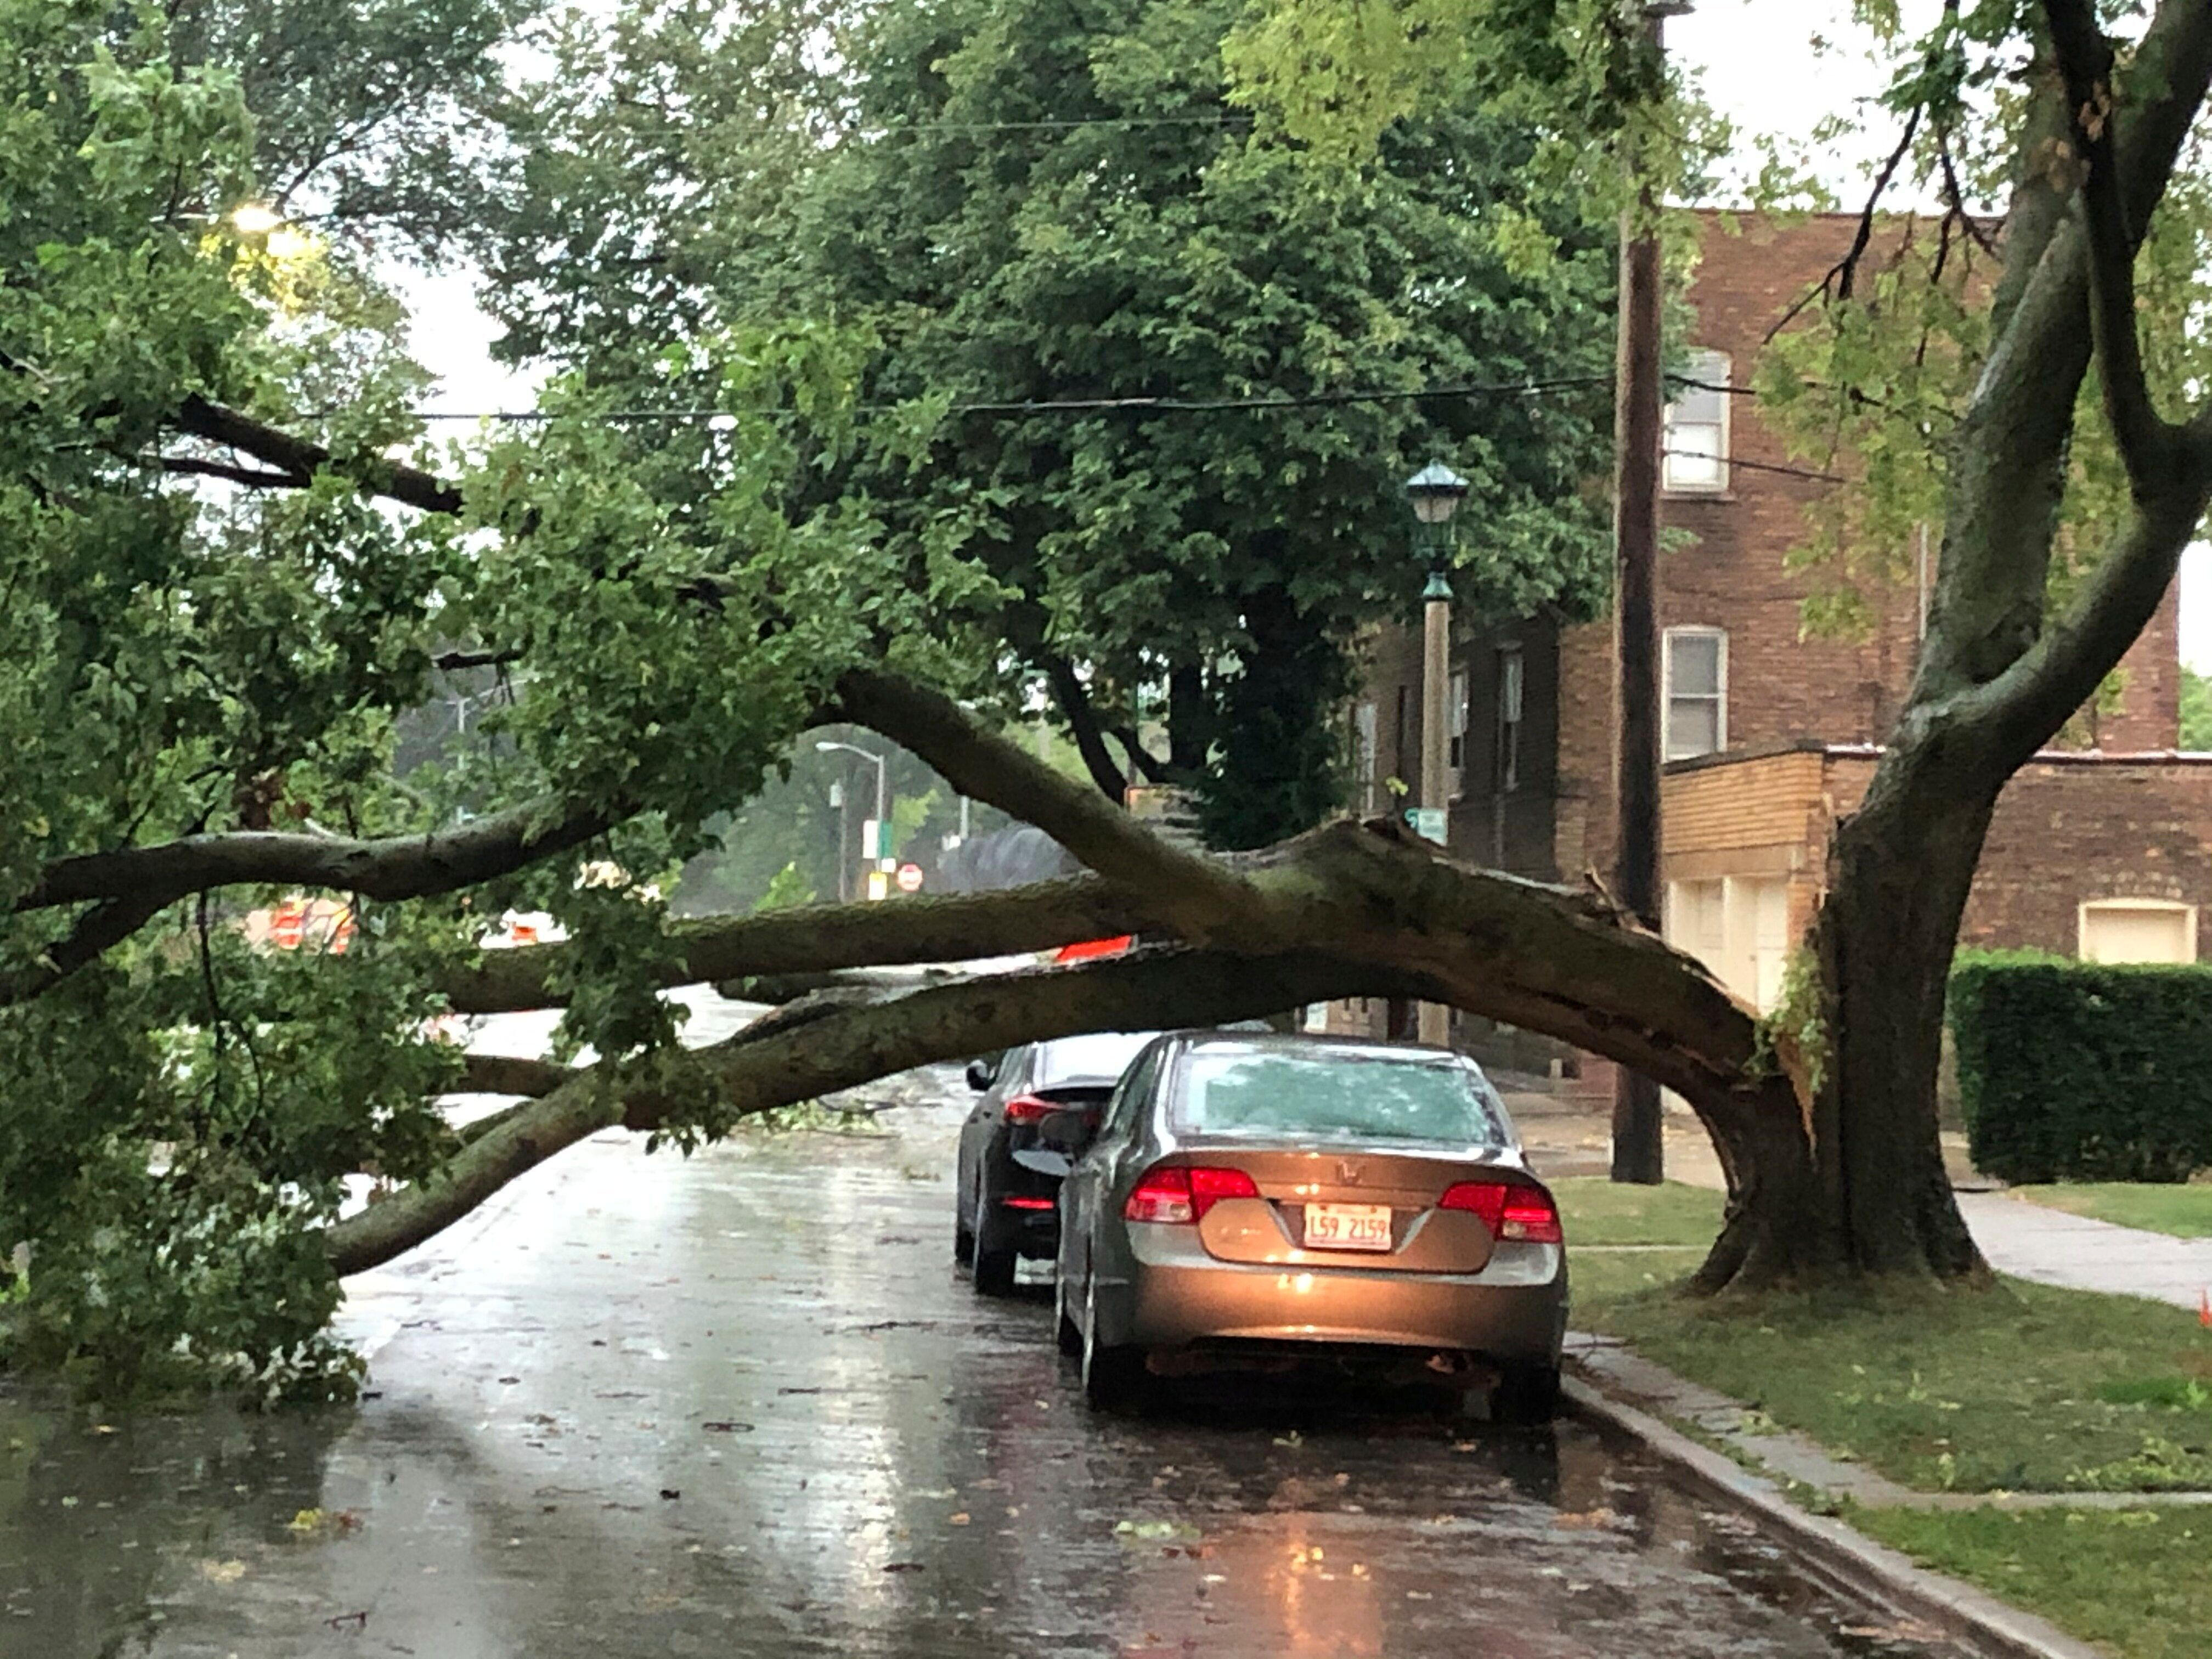 Part of a tree that had split at the trunk lies on a road in Oak Park, Ill., while also appearing not to have landed on a car